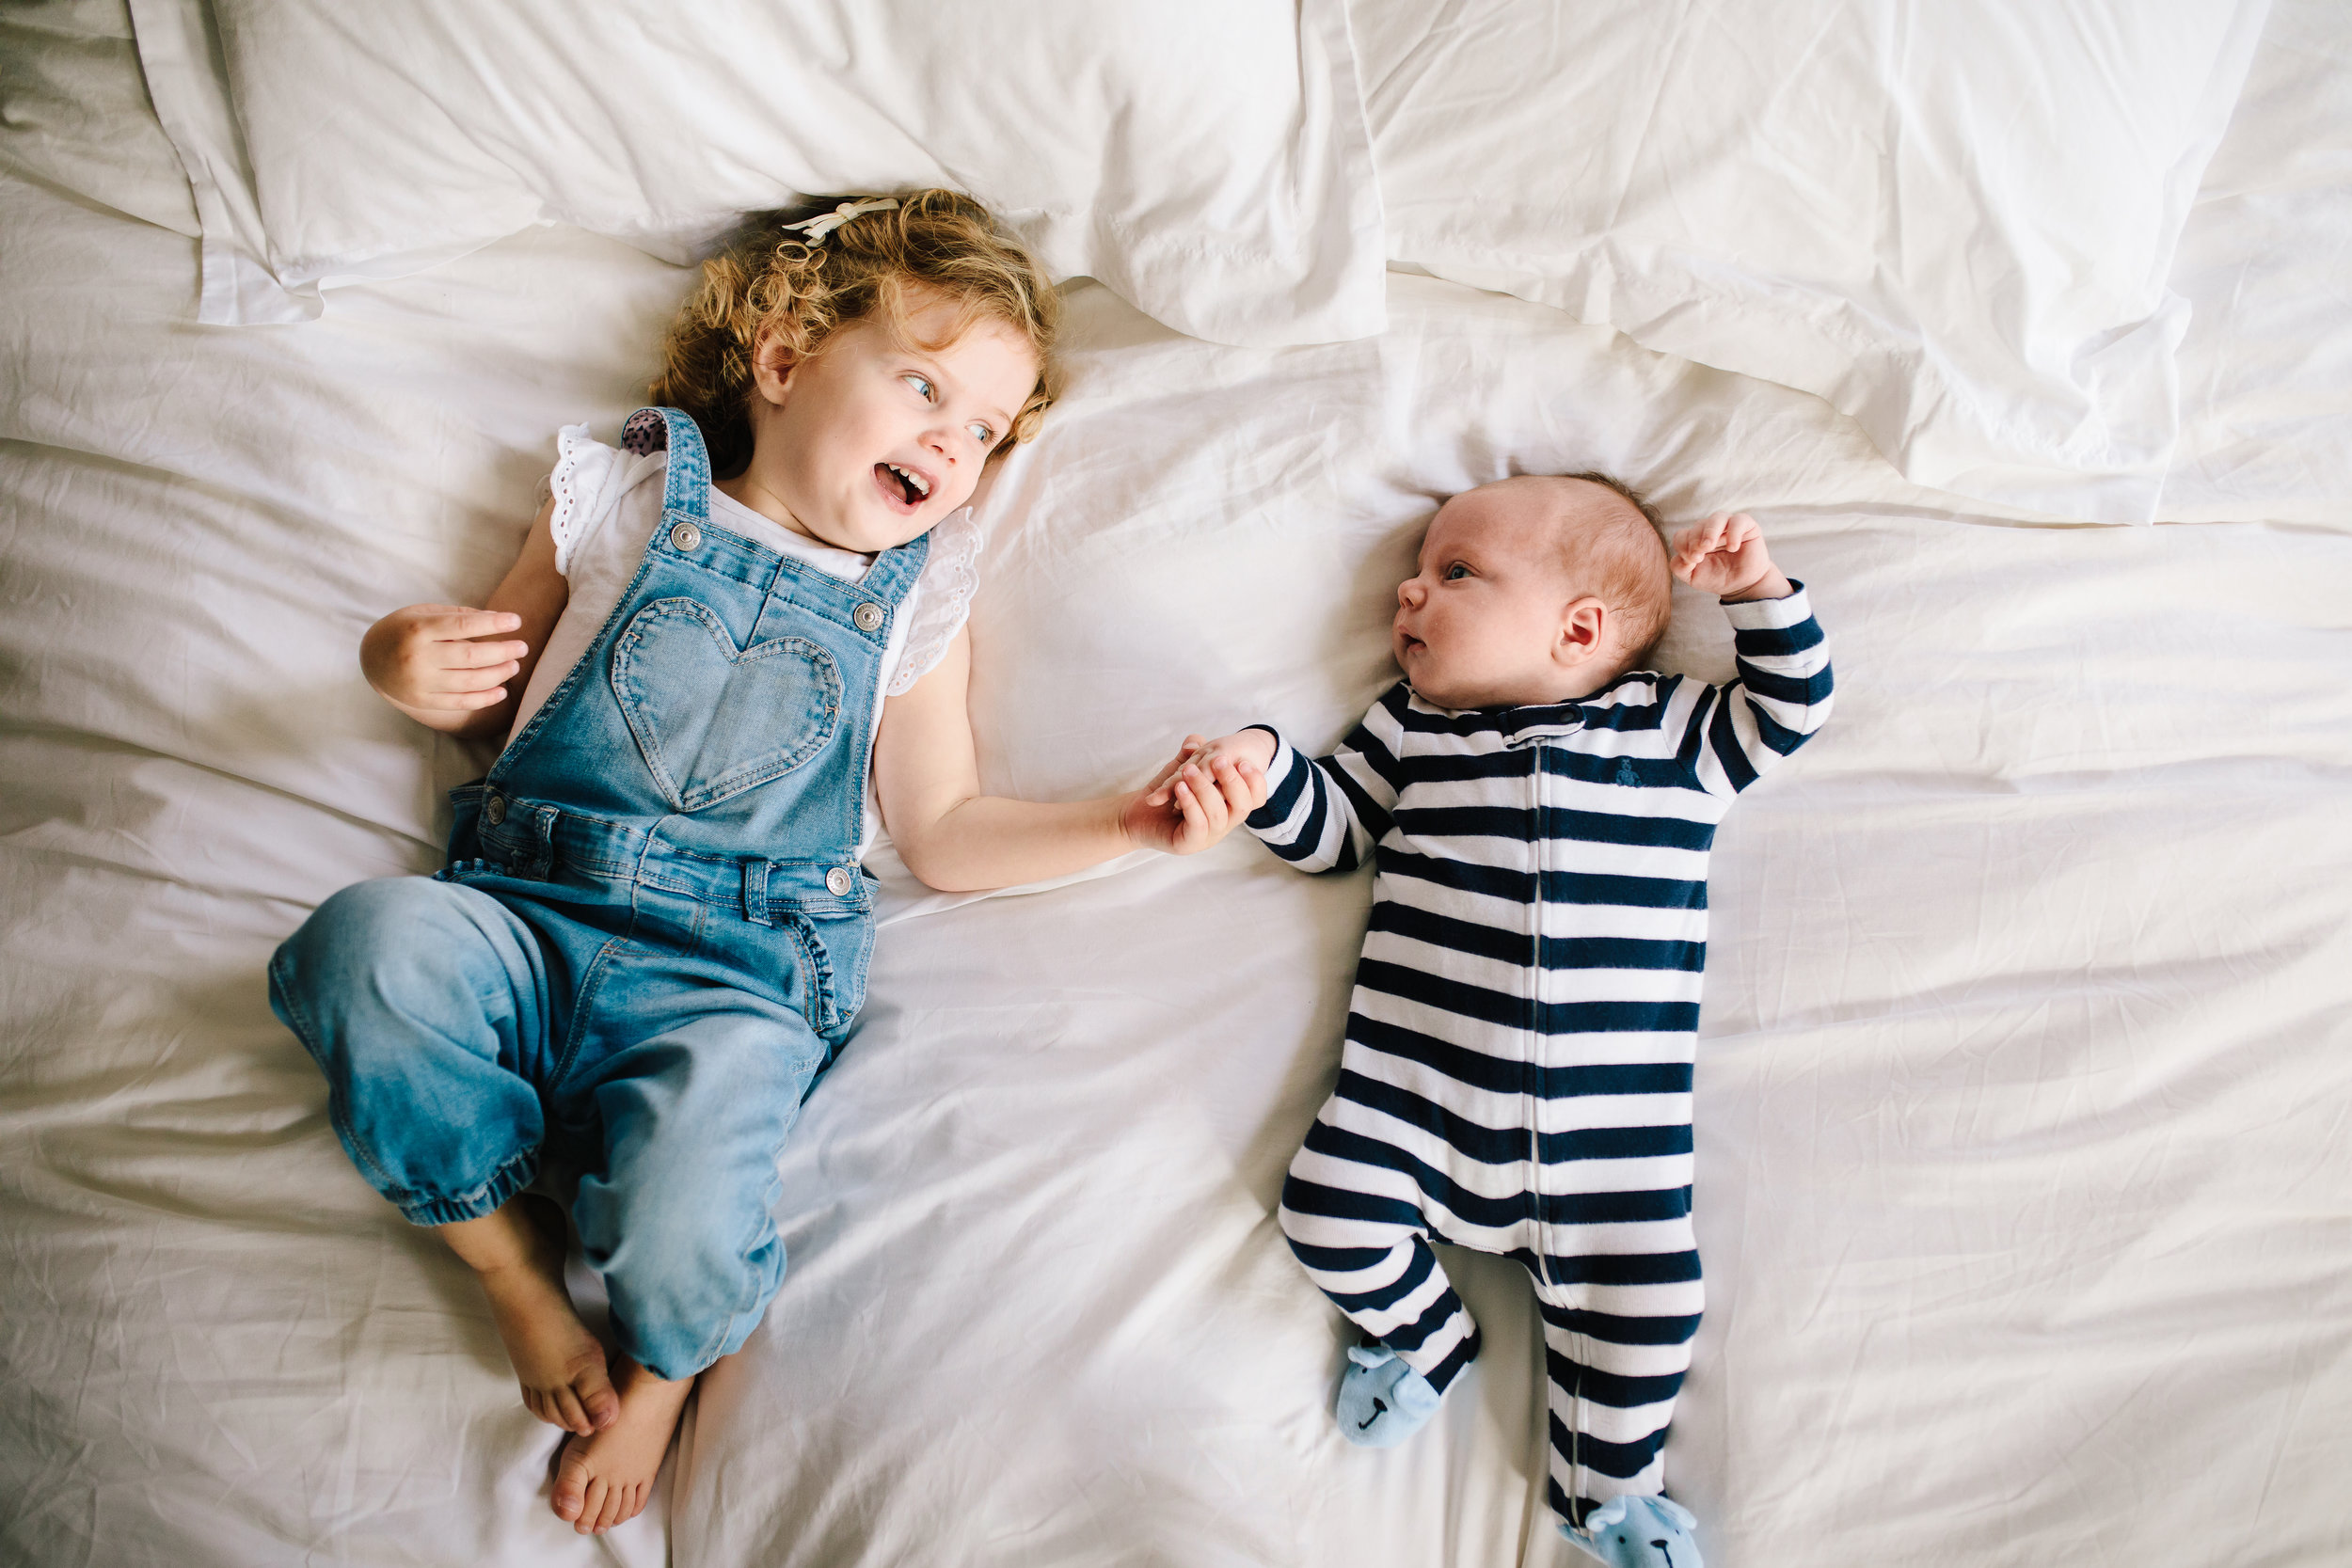 Toddler sister with newborn baby brother